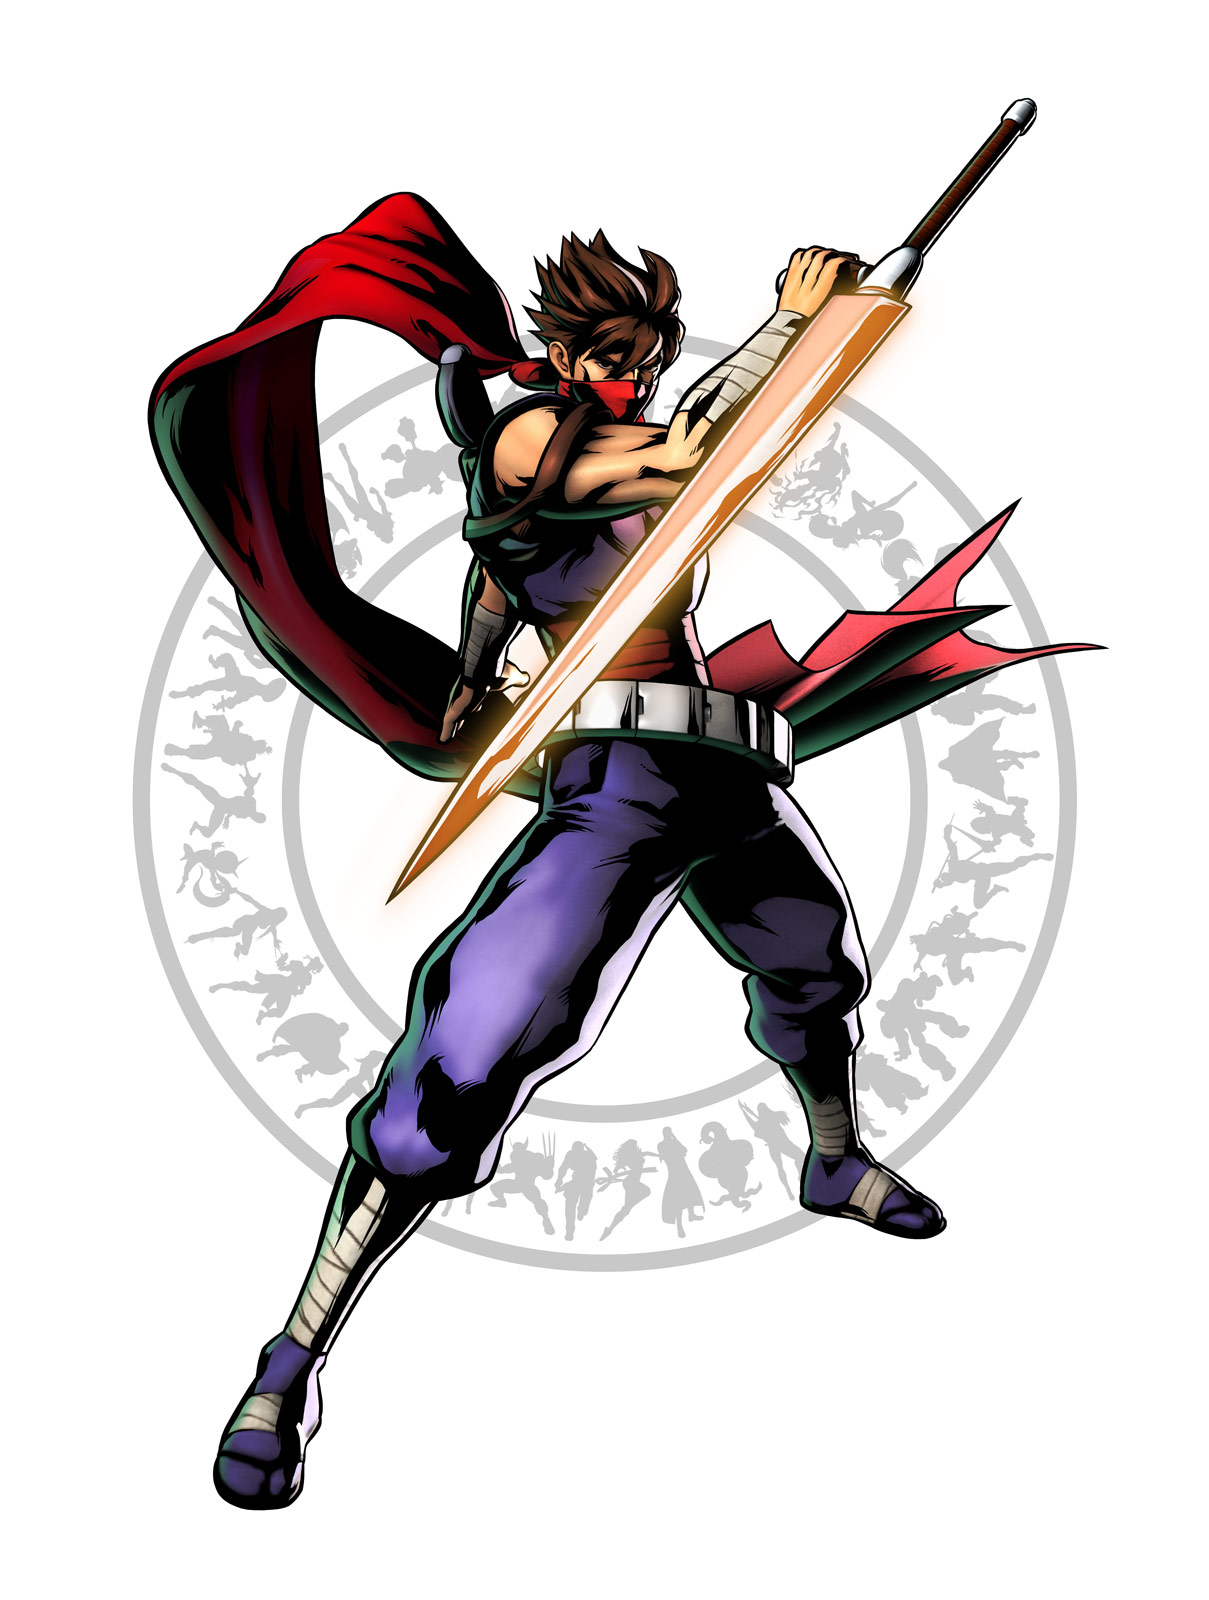 Strider's artwork for Ultimate Marvel vs. Capcom 3